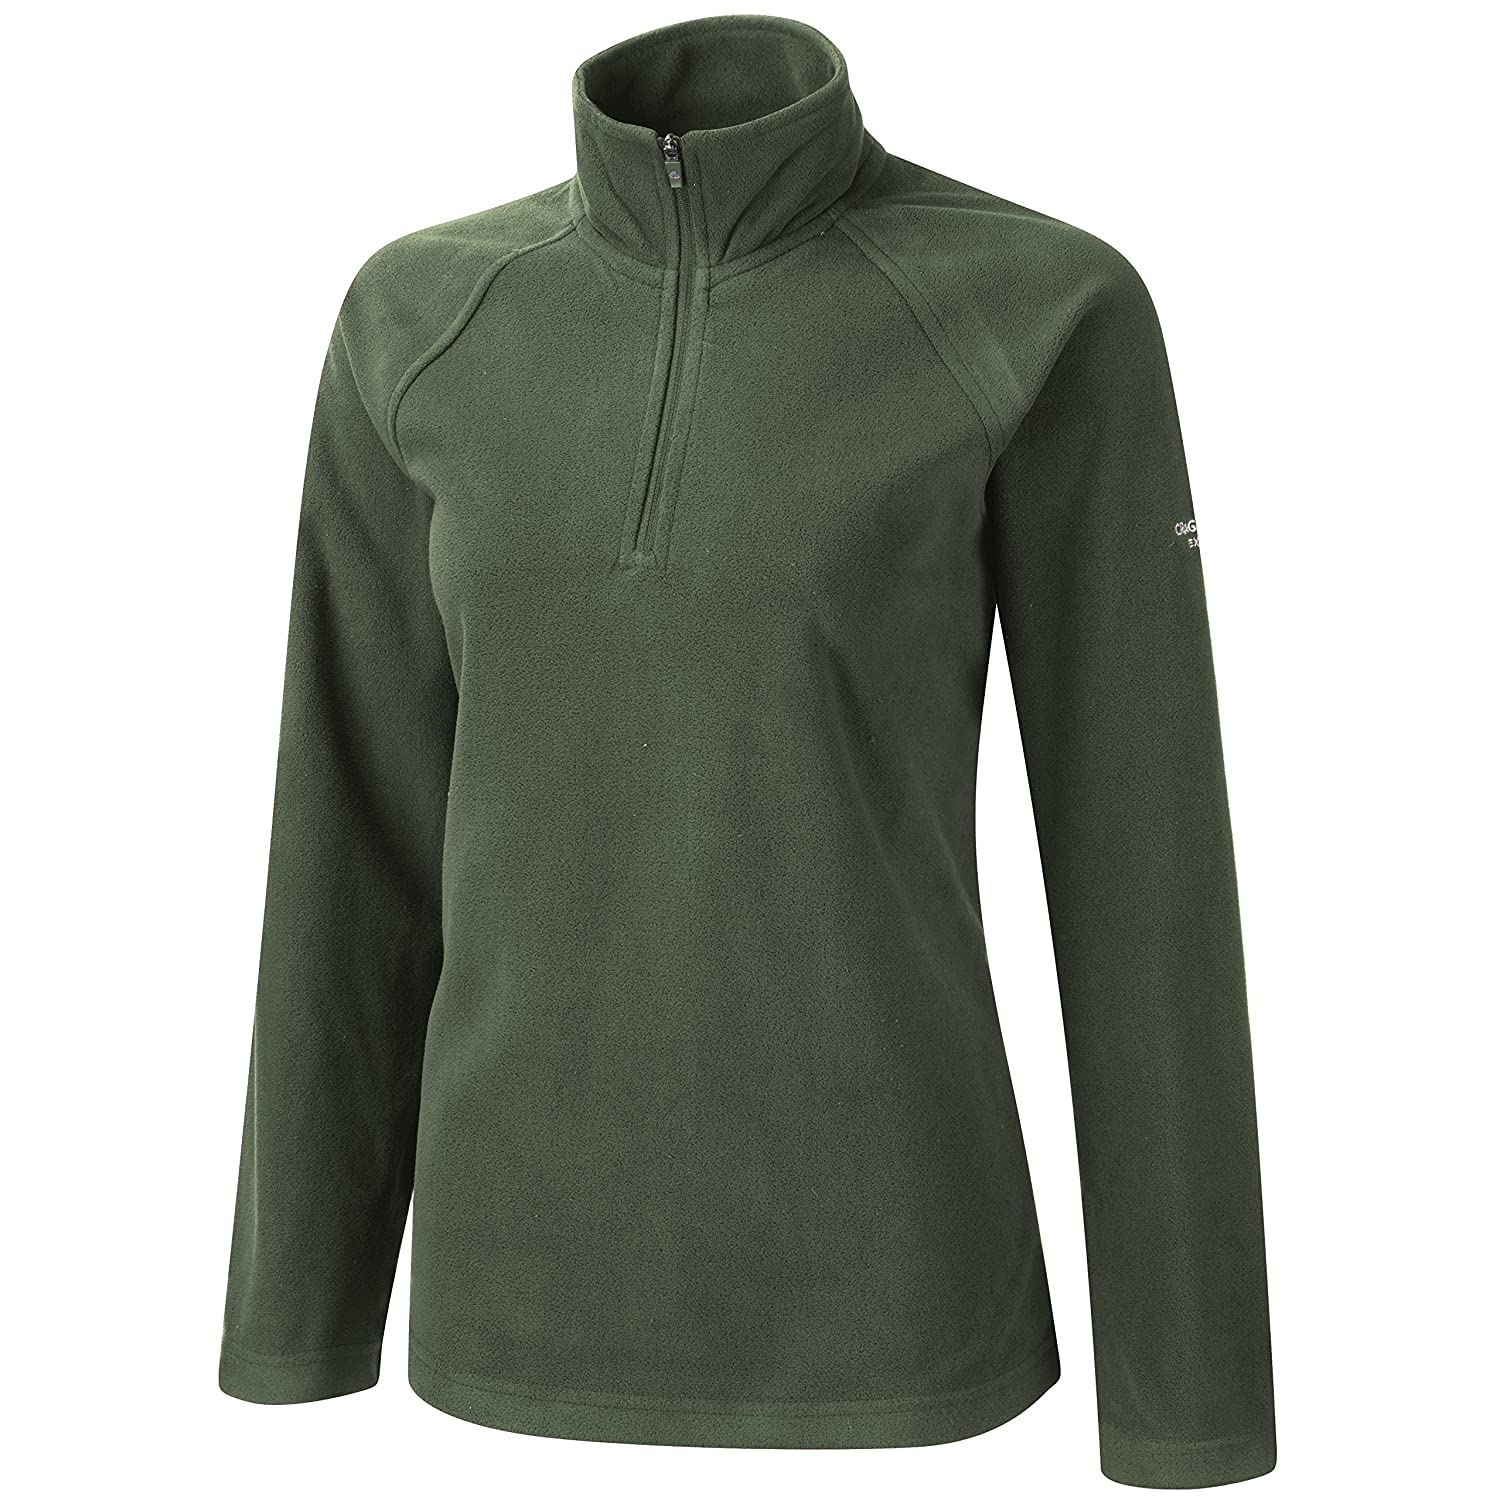 Women's basecamp microfleece HZ Craghoppers